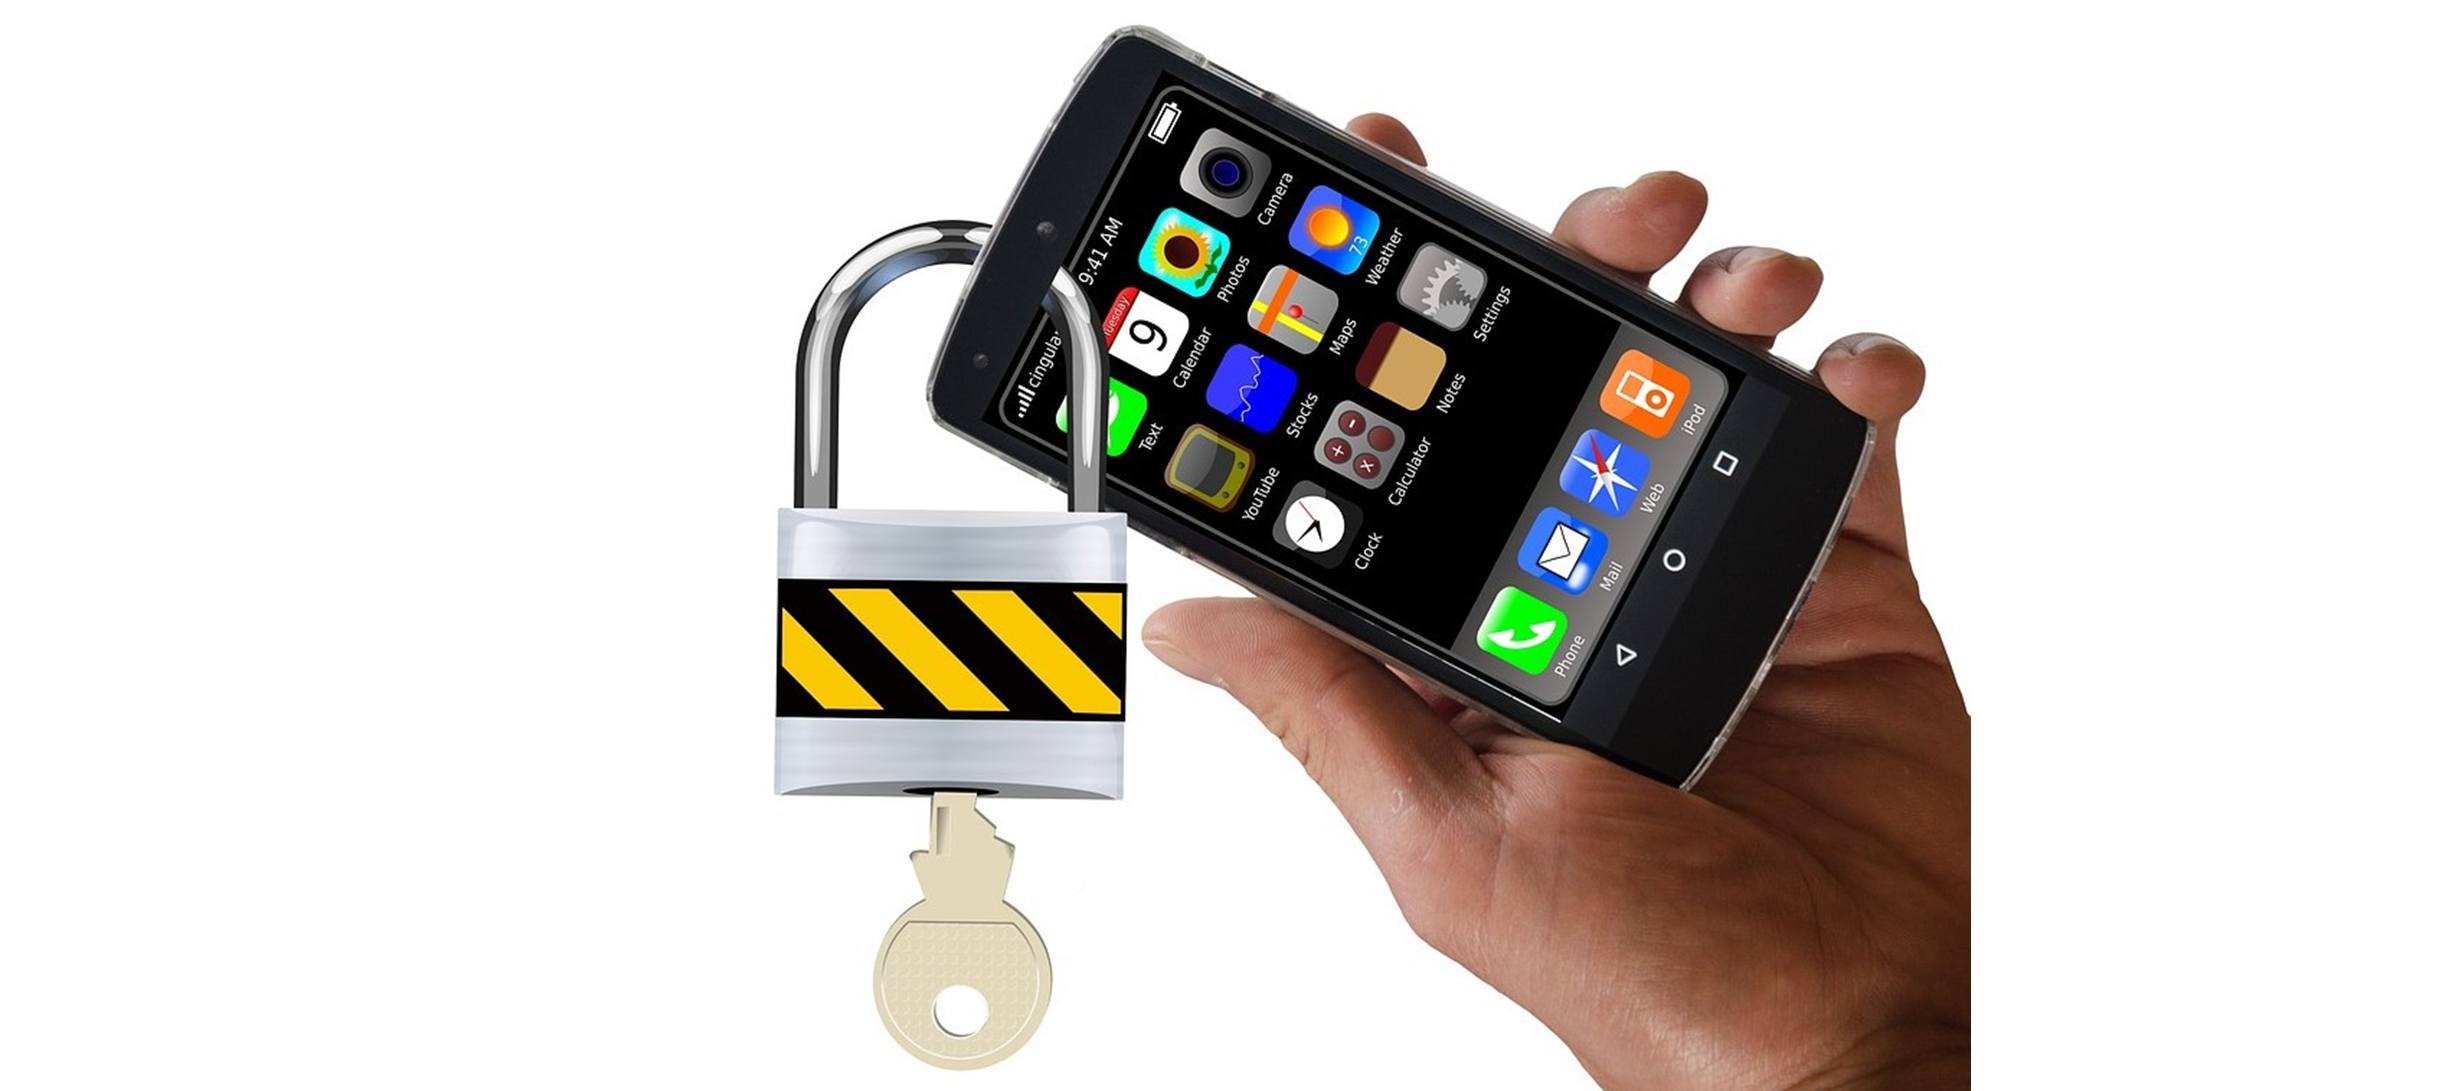 How secure is your mobile phone?